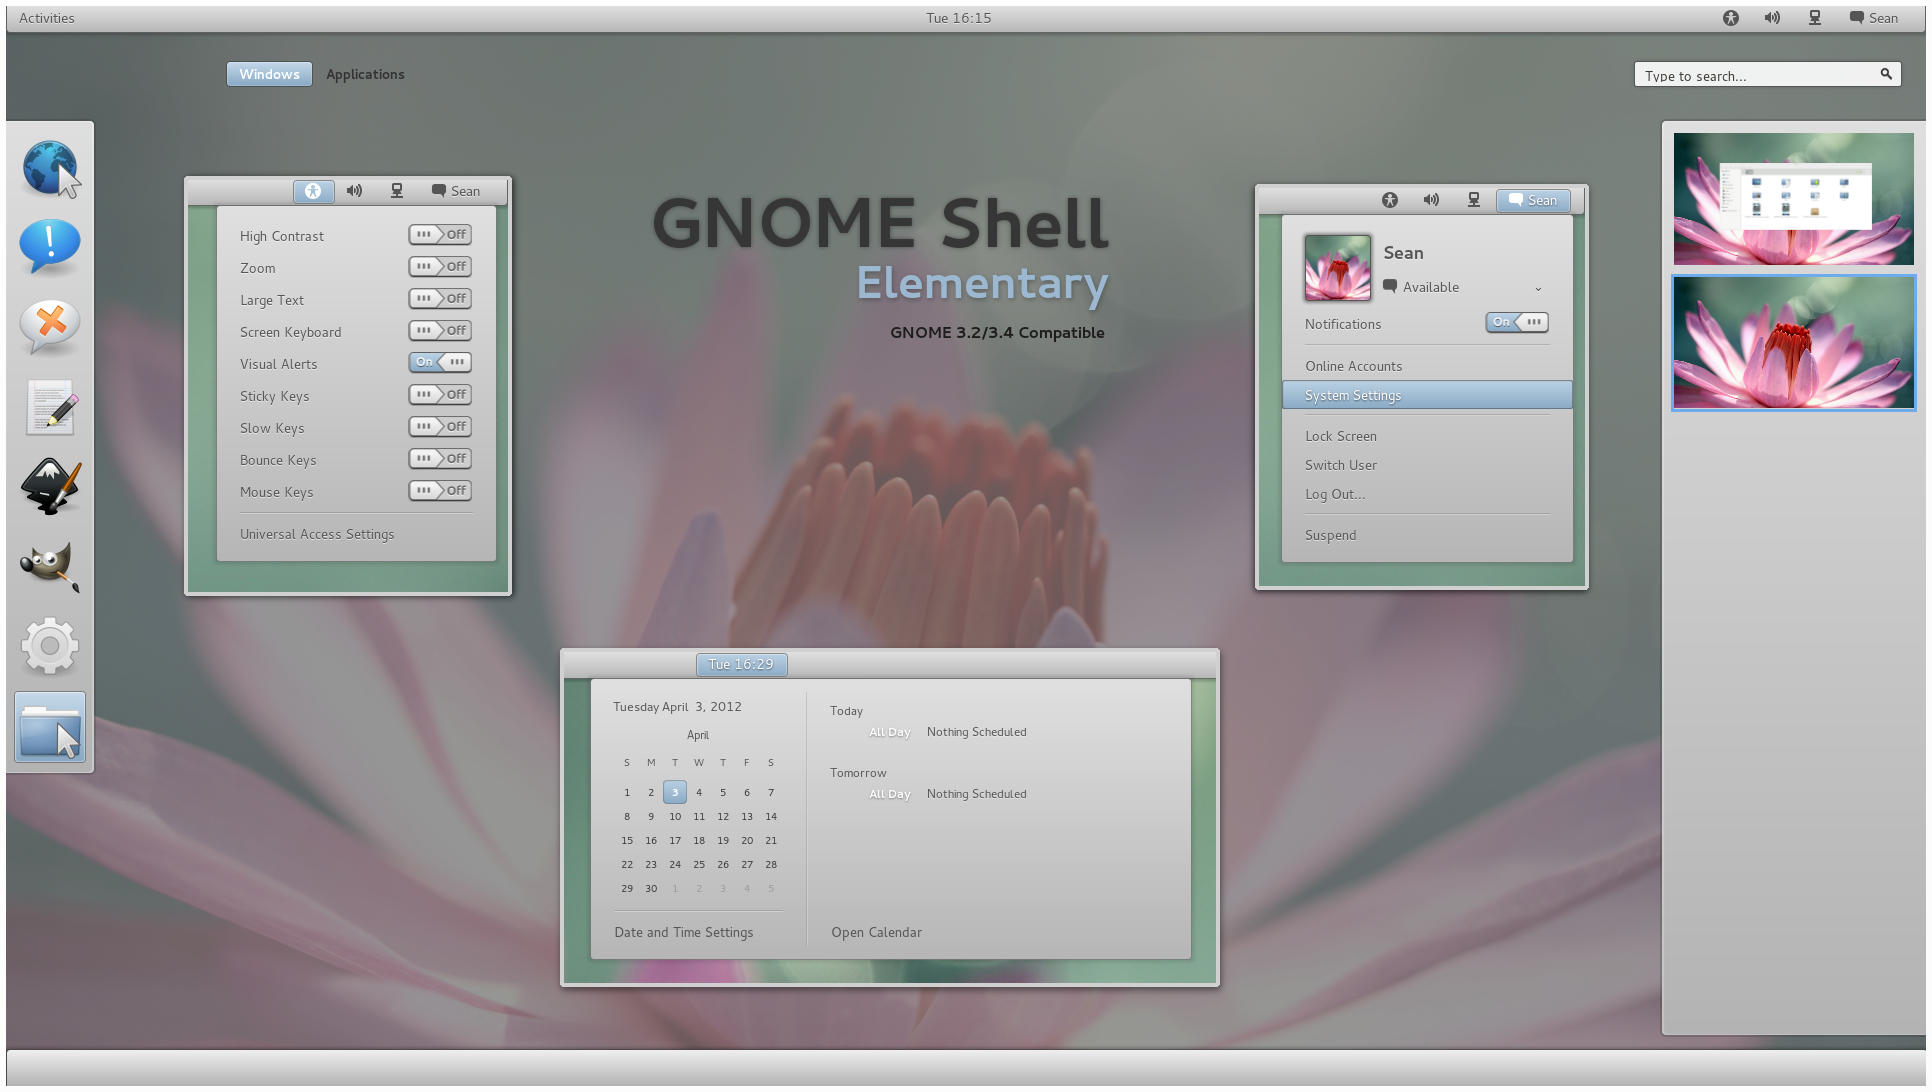 GNOME Shell - Elementary by half-left